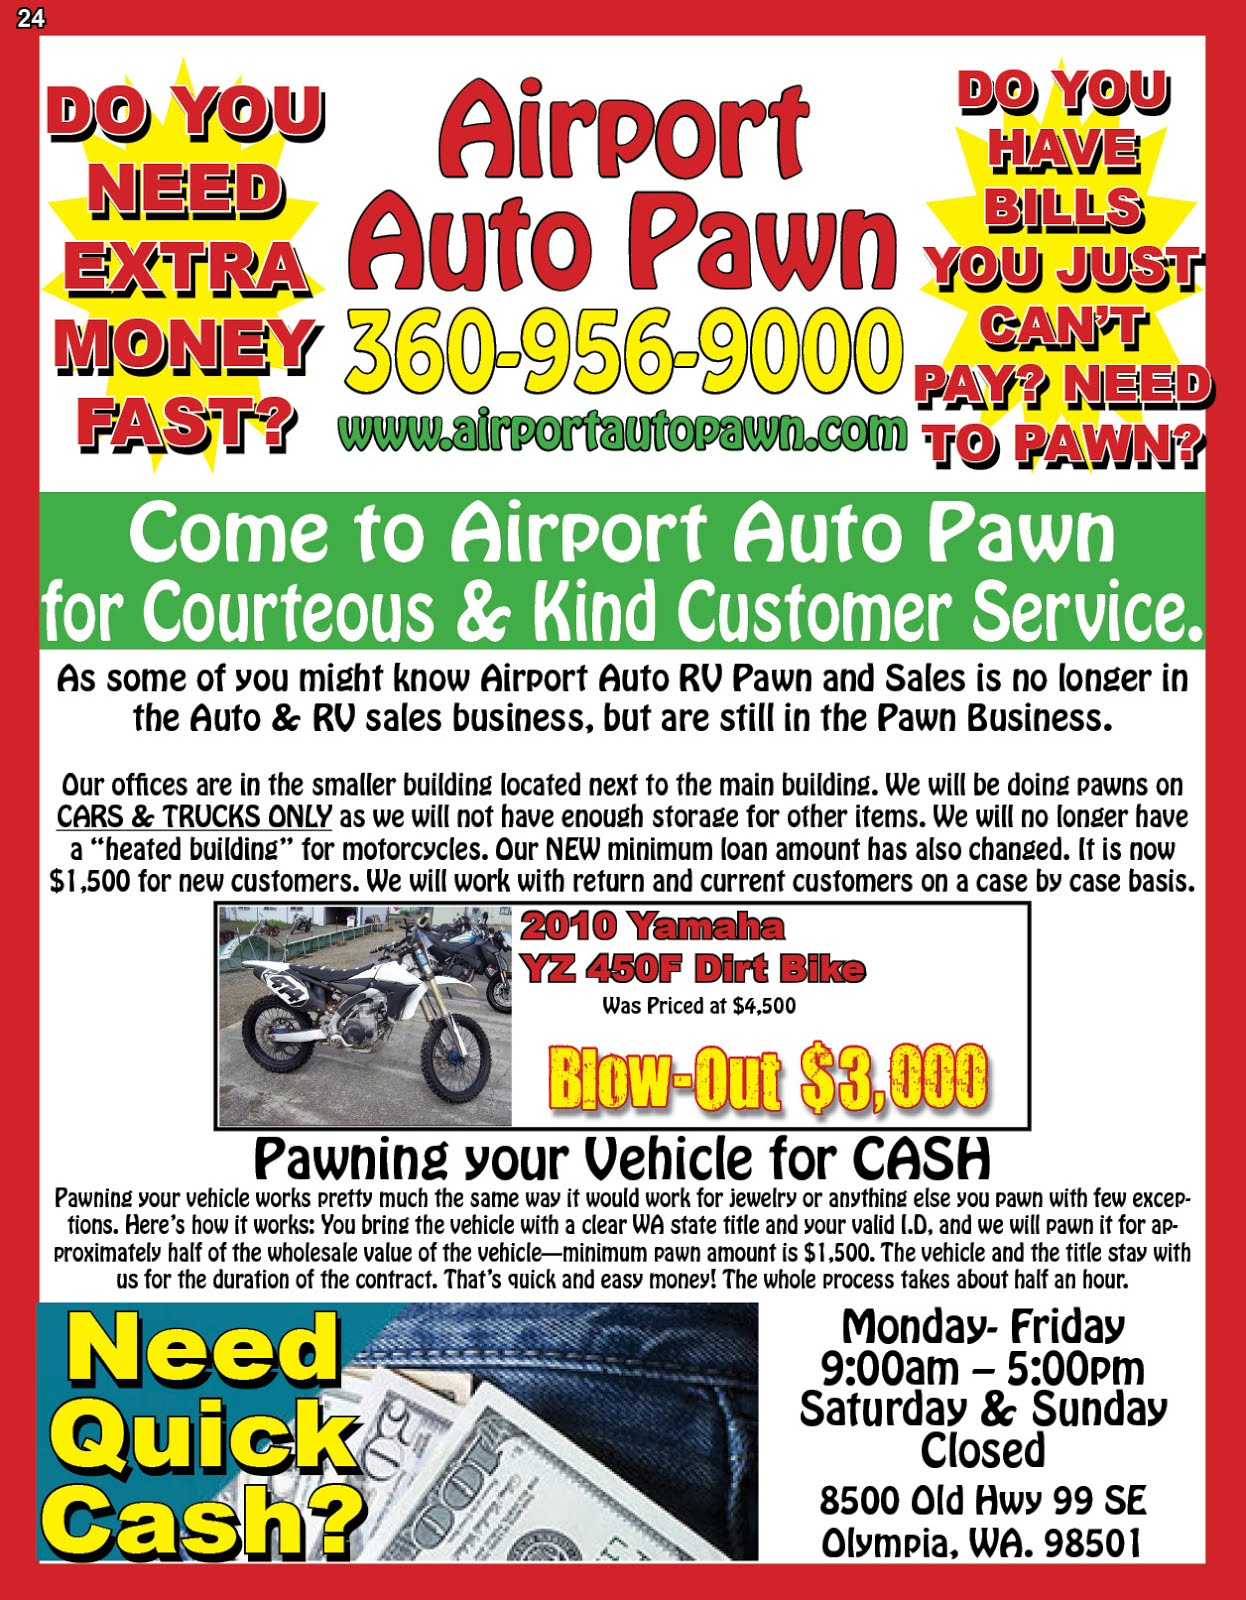 Airport Auto Pawn  Do You Need Extra Cash Fast?